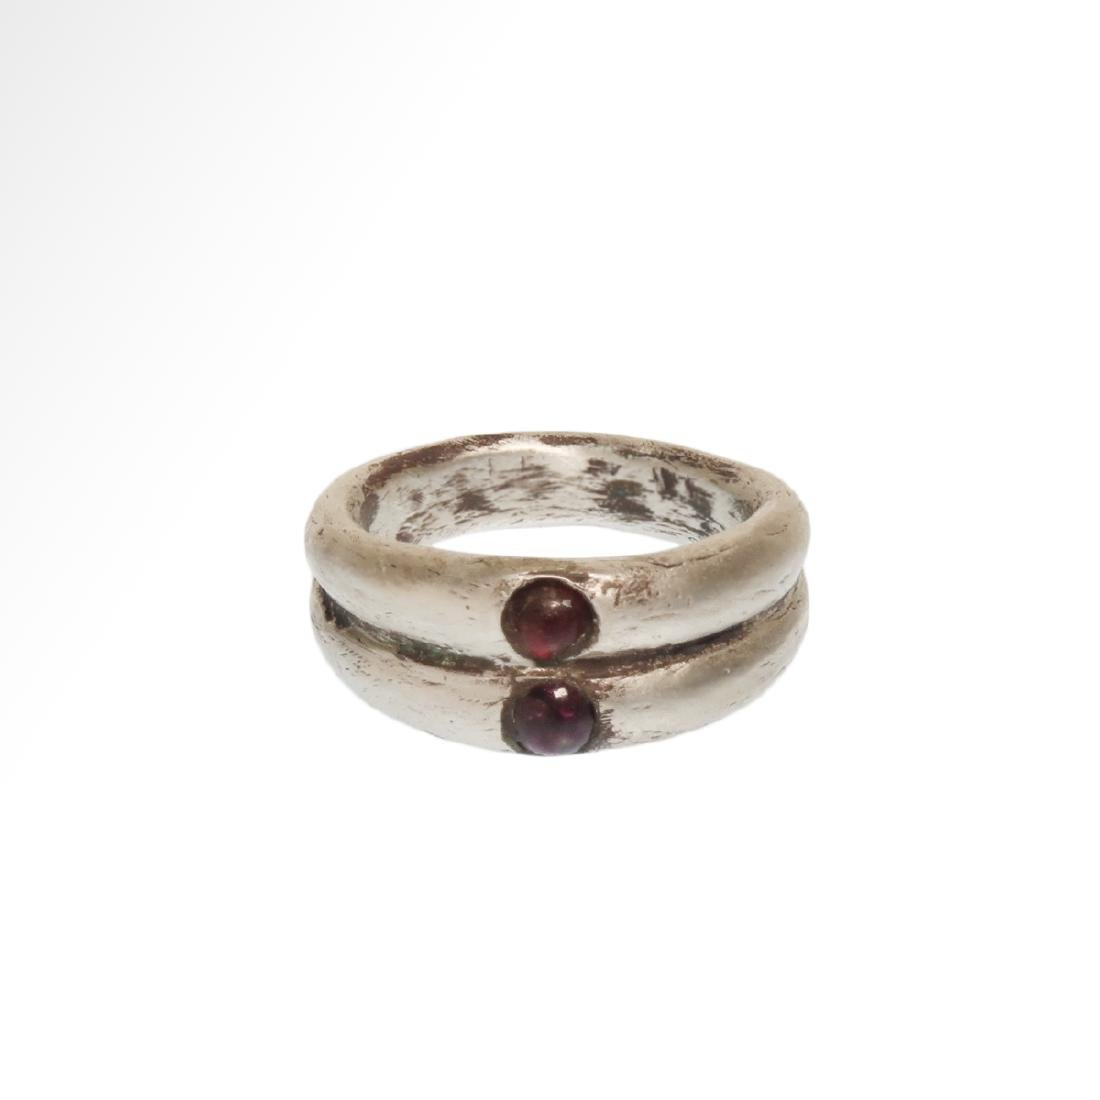 Roman Double Silver Ring with Garnets, c. 3rd Century